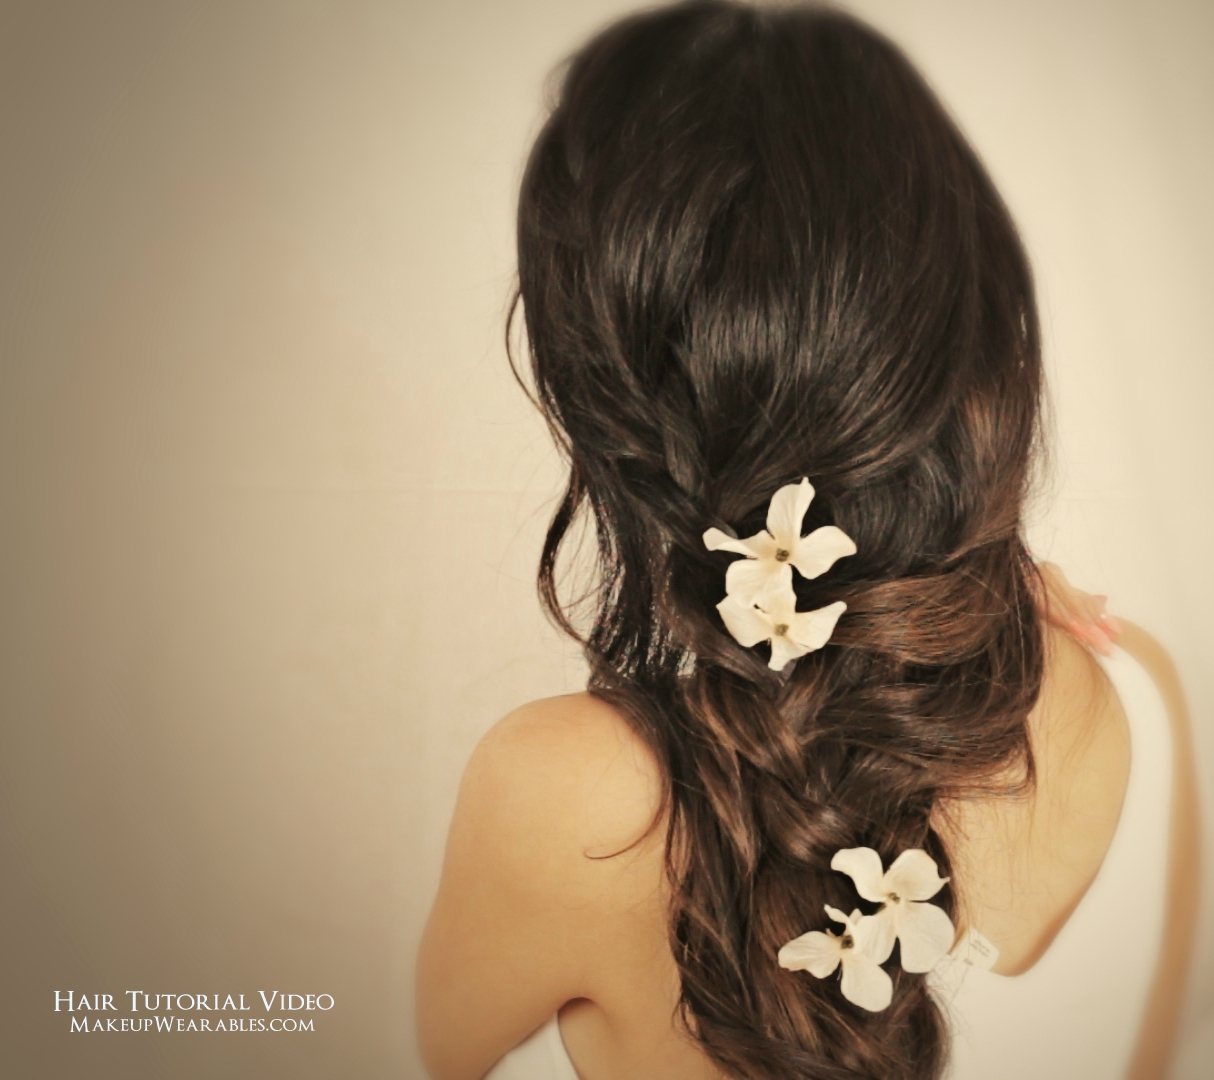 Wedding Hairstyle For Long Hair Tutorial: 2 Most Romantic, Curly Half-Up Hairstyles Updos